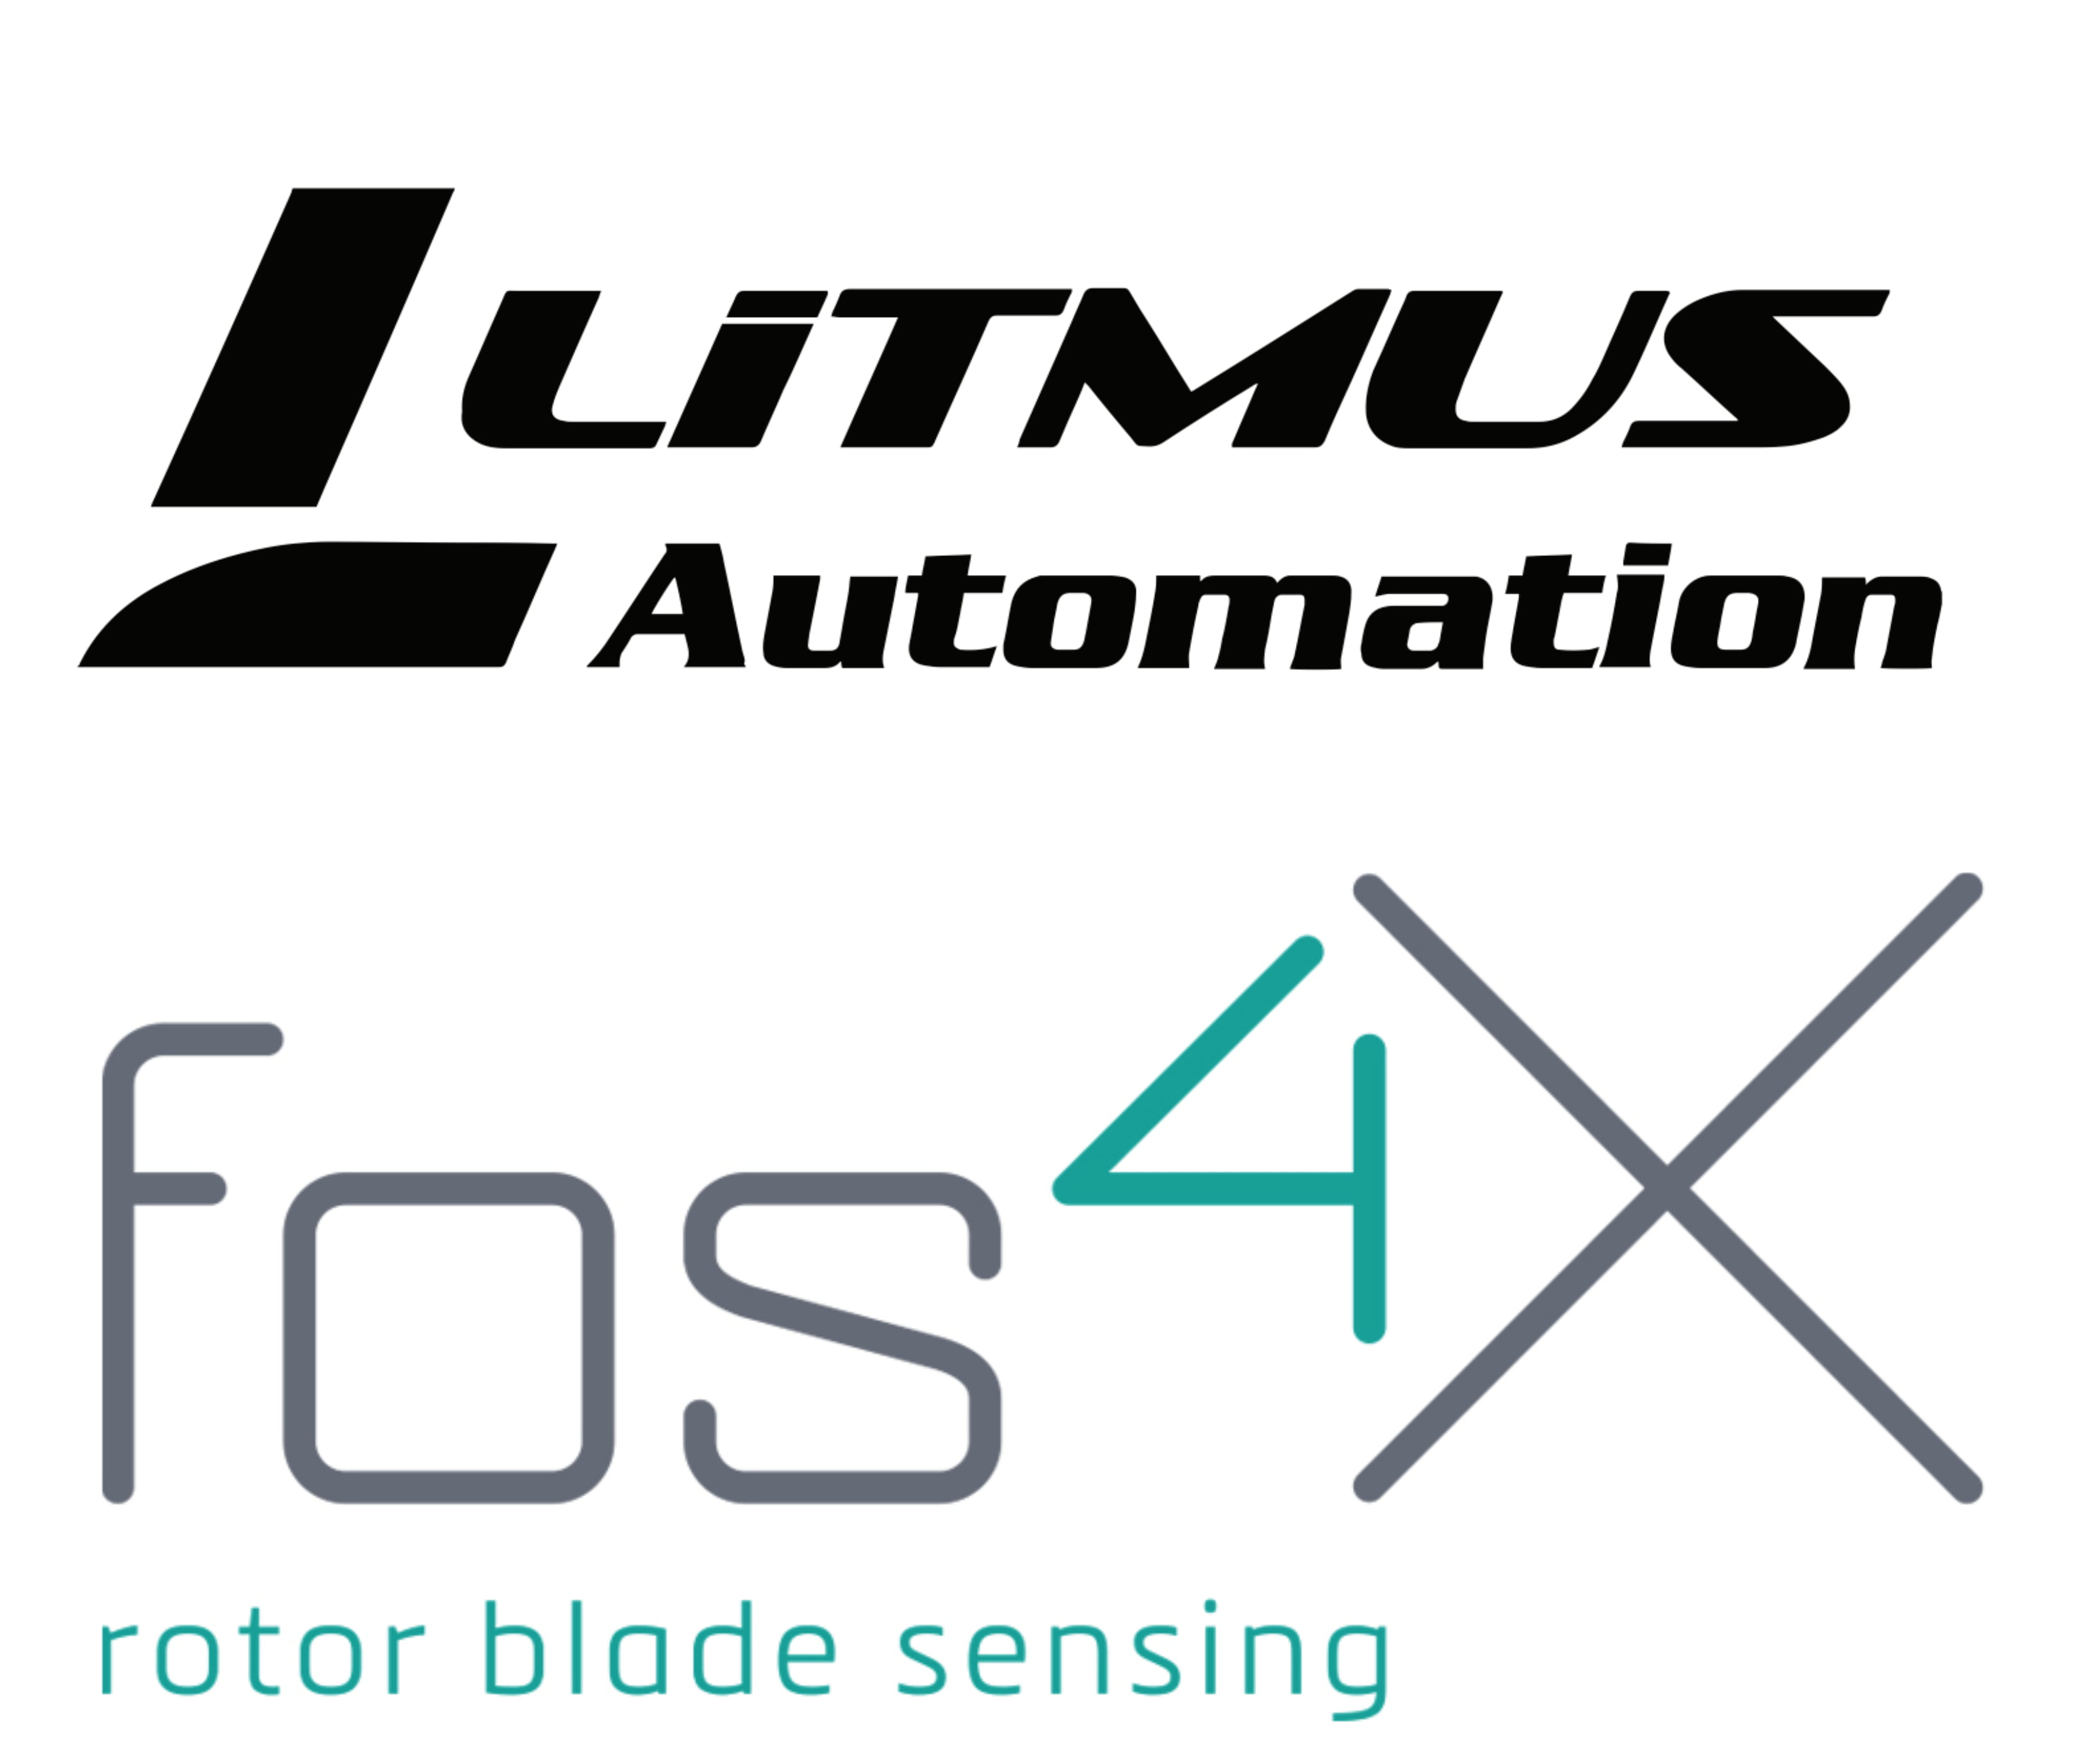 Litmus Automation Partners With fos4X on Wind Turbine Optimization Solution